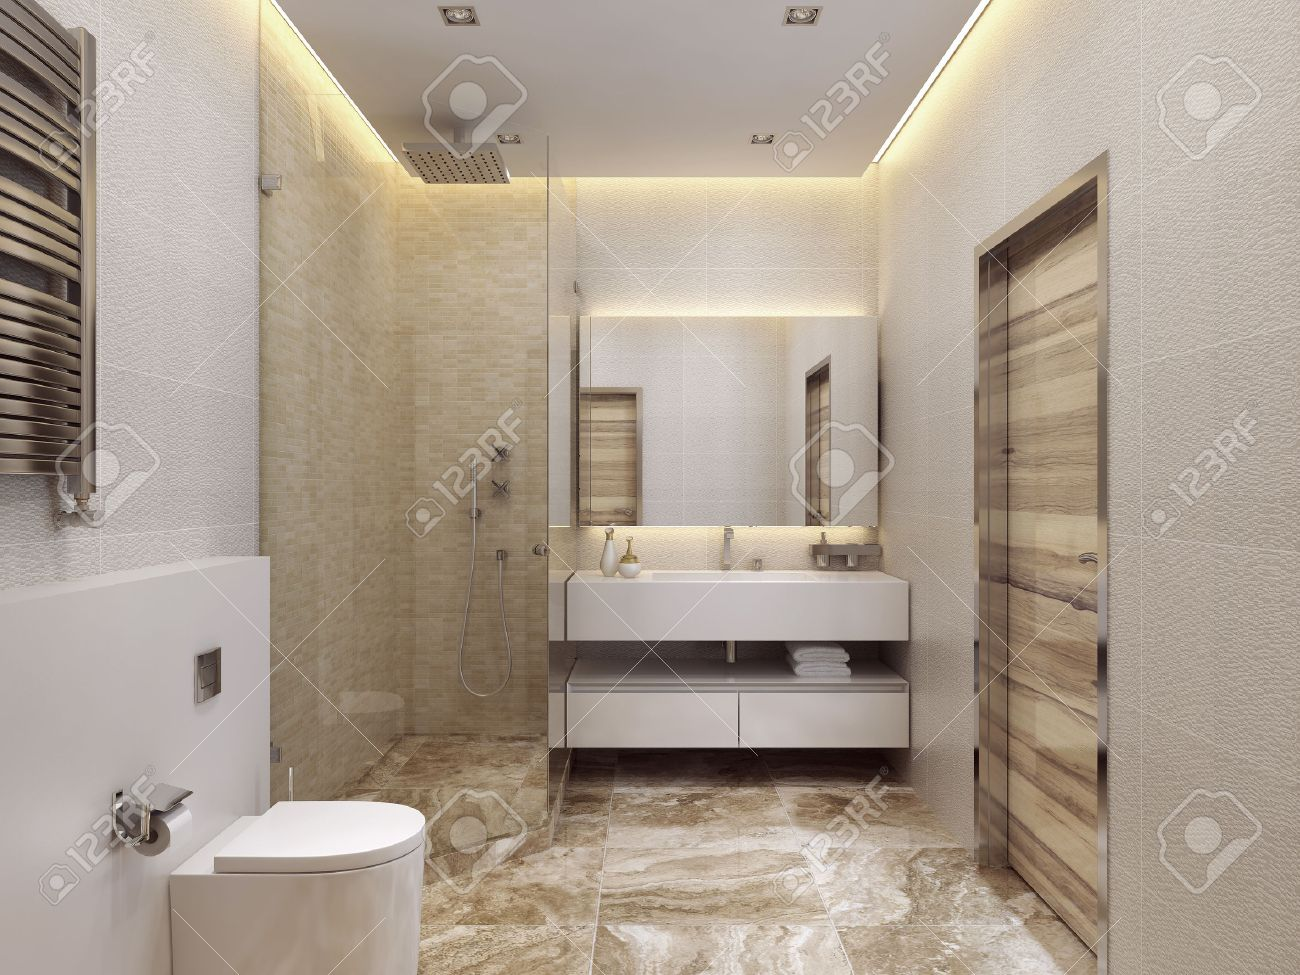 Design Contemporary Style Bathrooms Shower And Toilet The Yellow Stock Photo Picture And Royalty Free Image Image 47411592